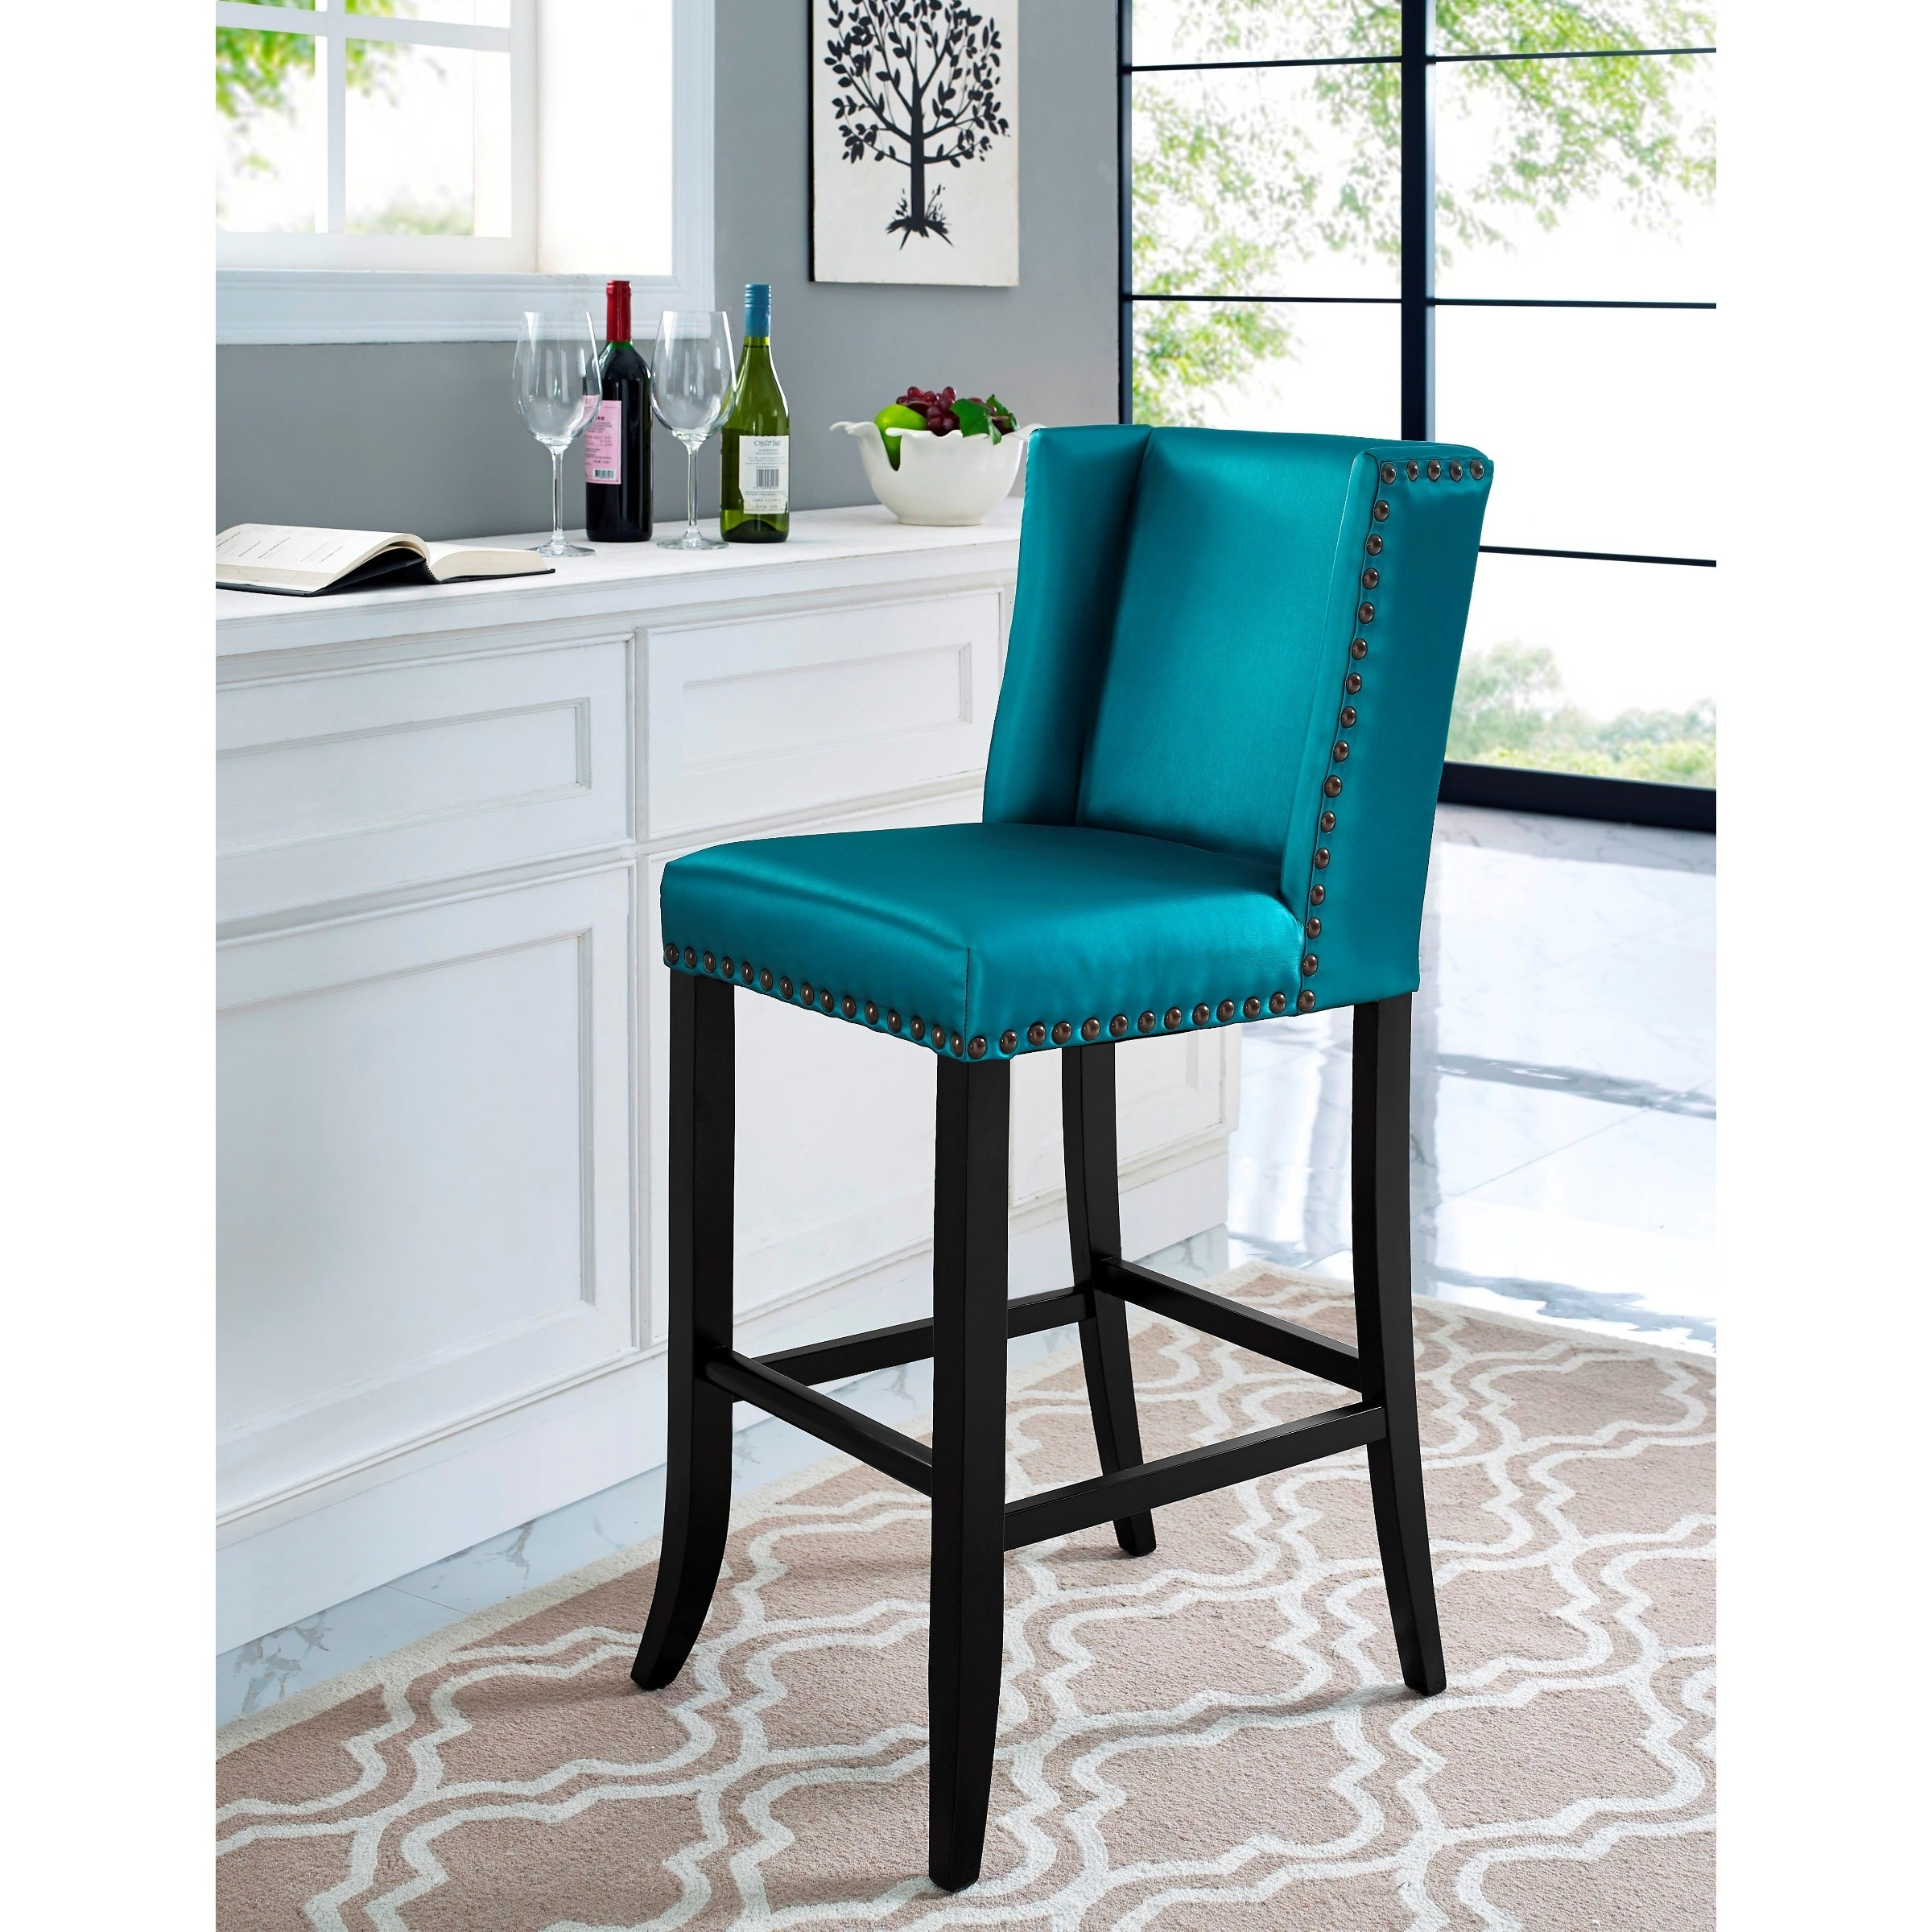 Shop denver blue bar stool free shipping today overstock com 10527796